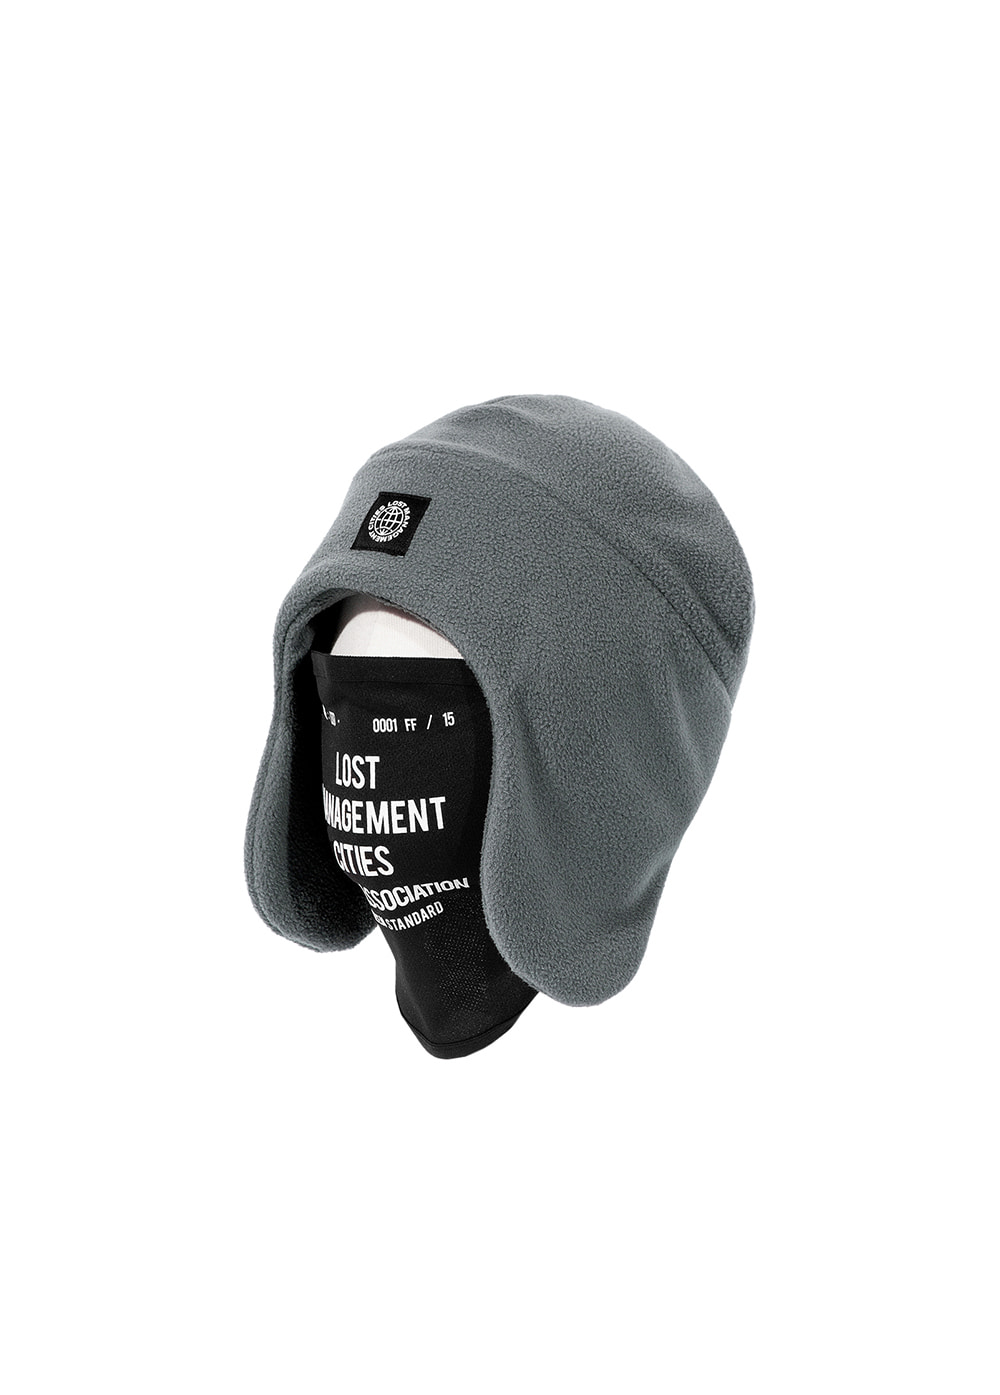 LMC MASK FLEECE EARFLAP BEANIE gray